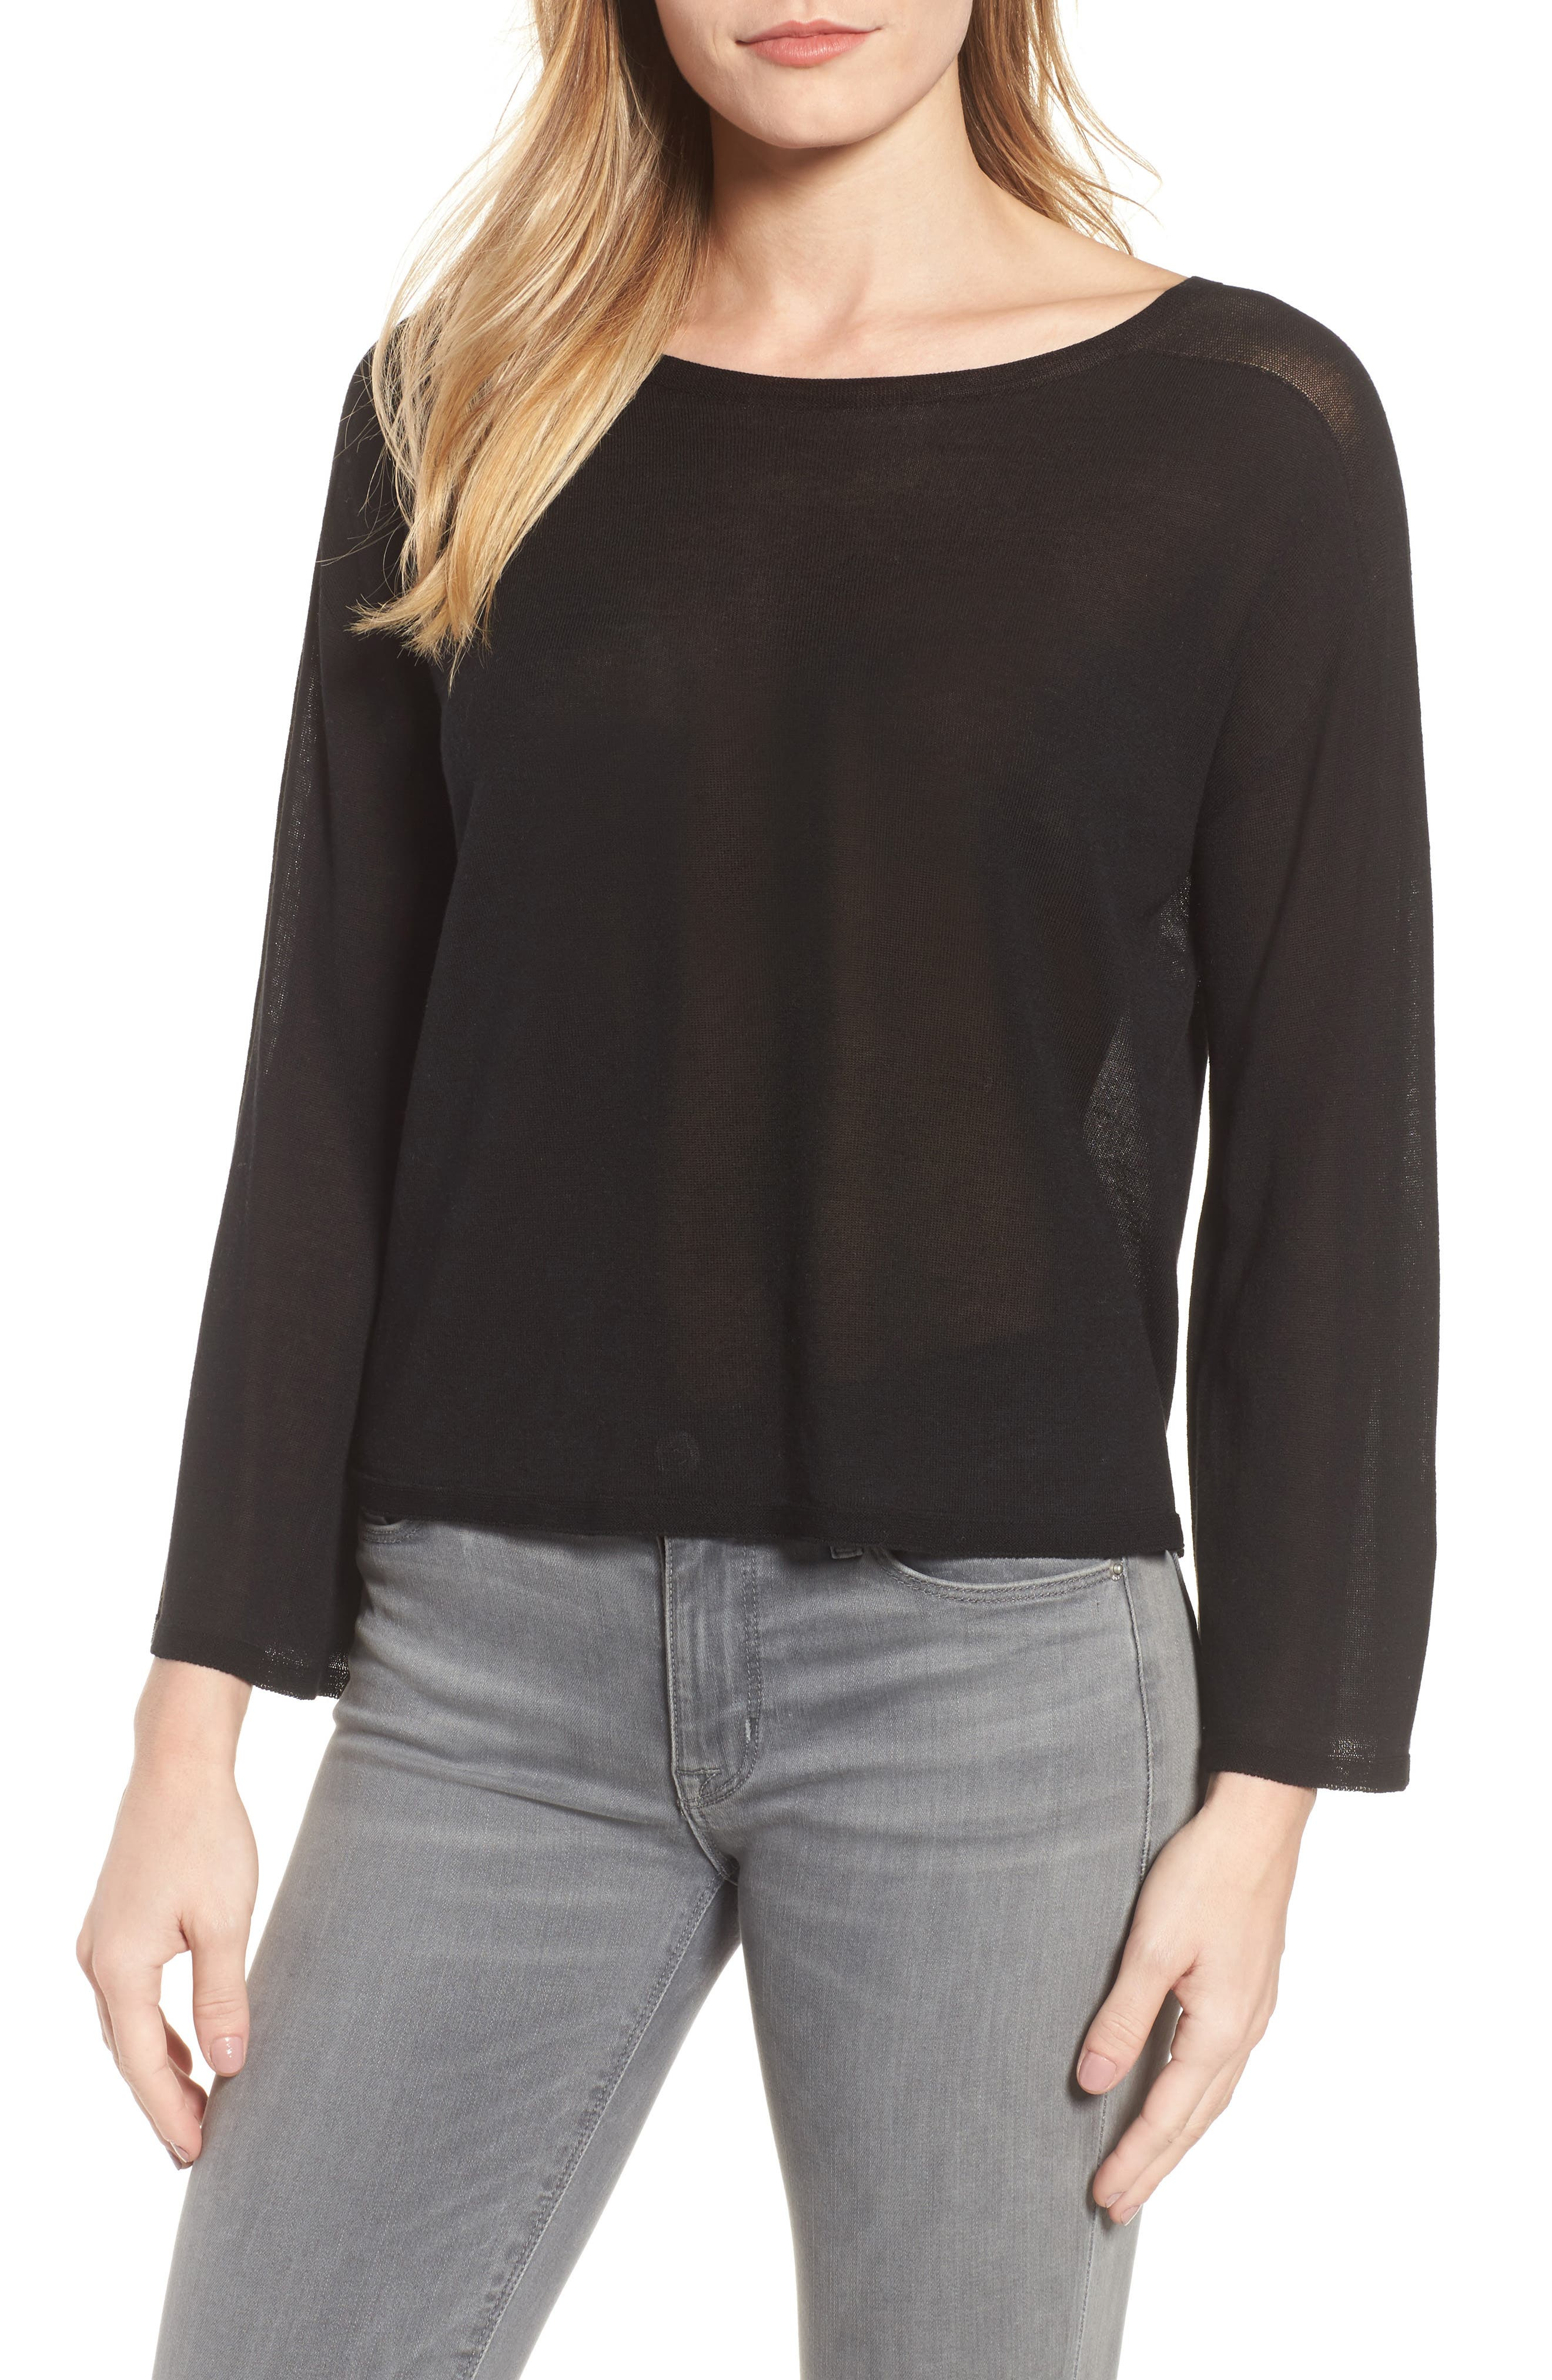 Tencel<sup>®</sup> Lyocell Knit Sweater,                         Main,                         color, 001